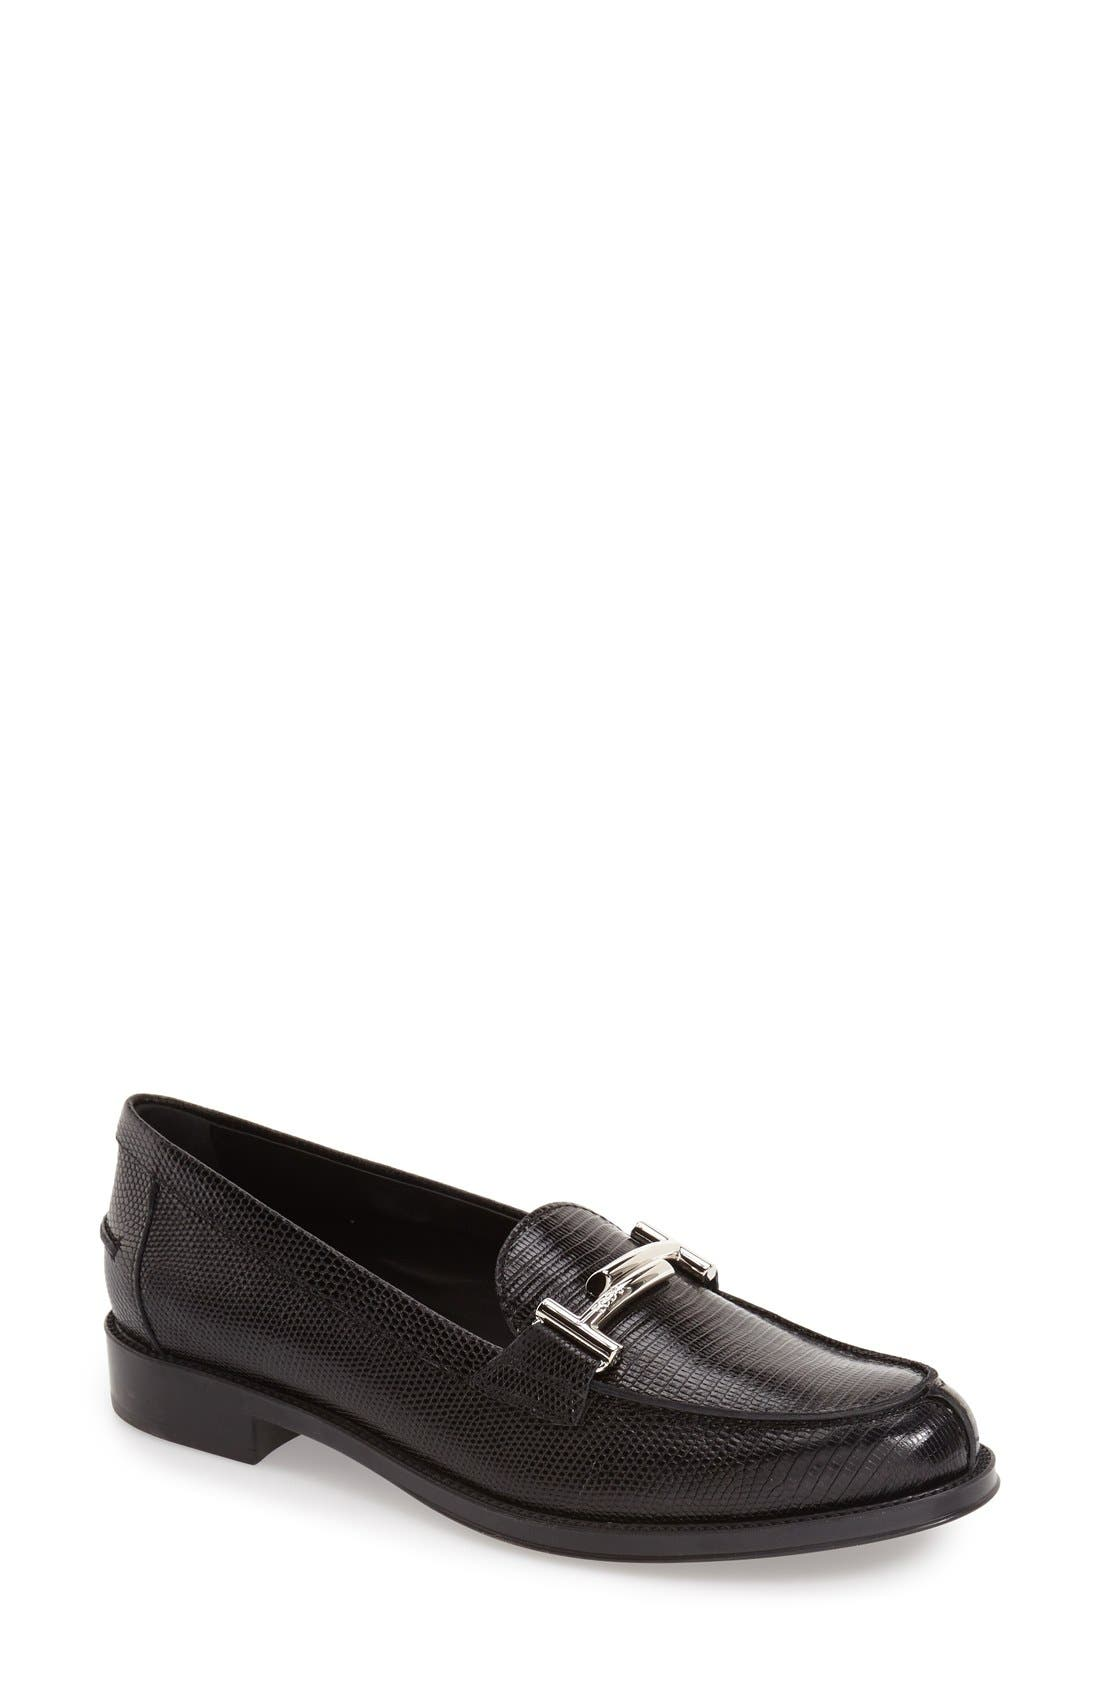 Main Image - Tod's 'Double T' Loafer (Women)